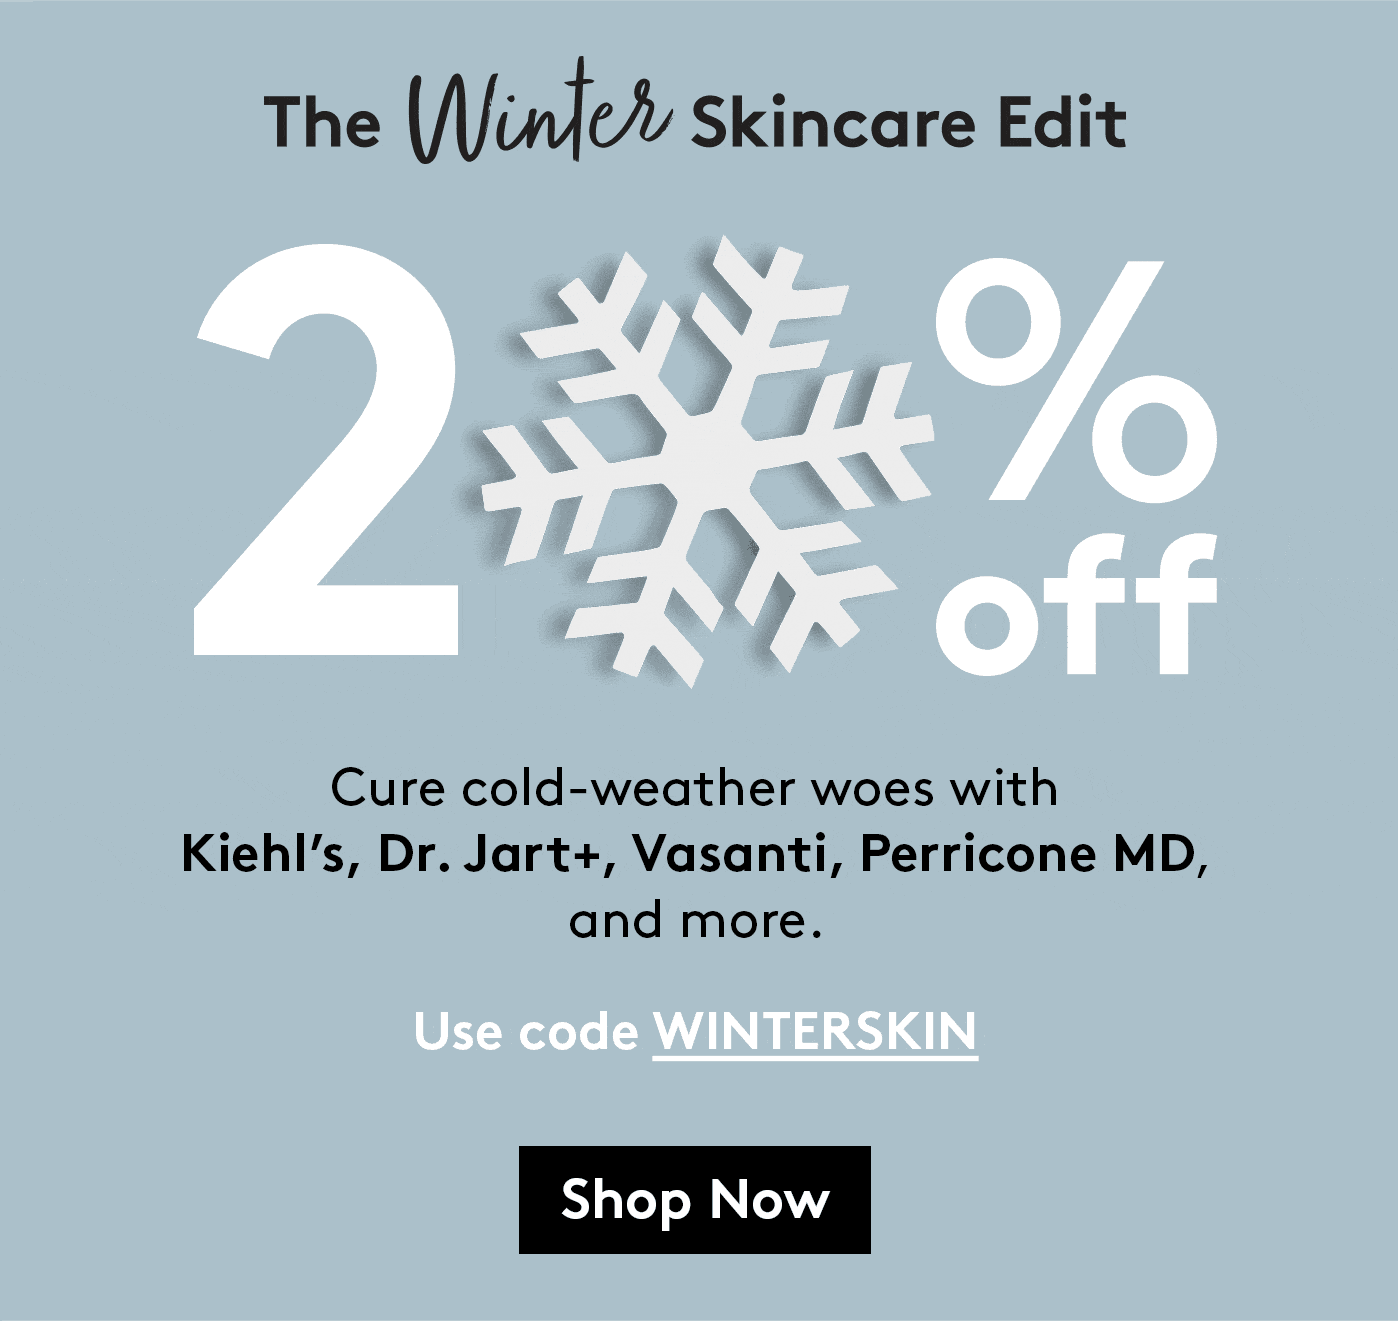 Birchbox Coupons: 20% Off Winter Skincare! LAST DAY!